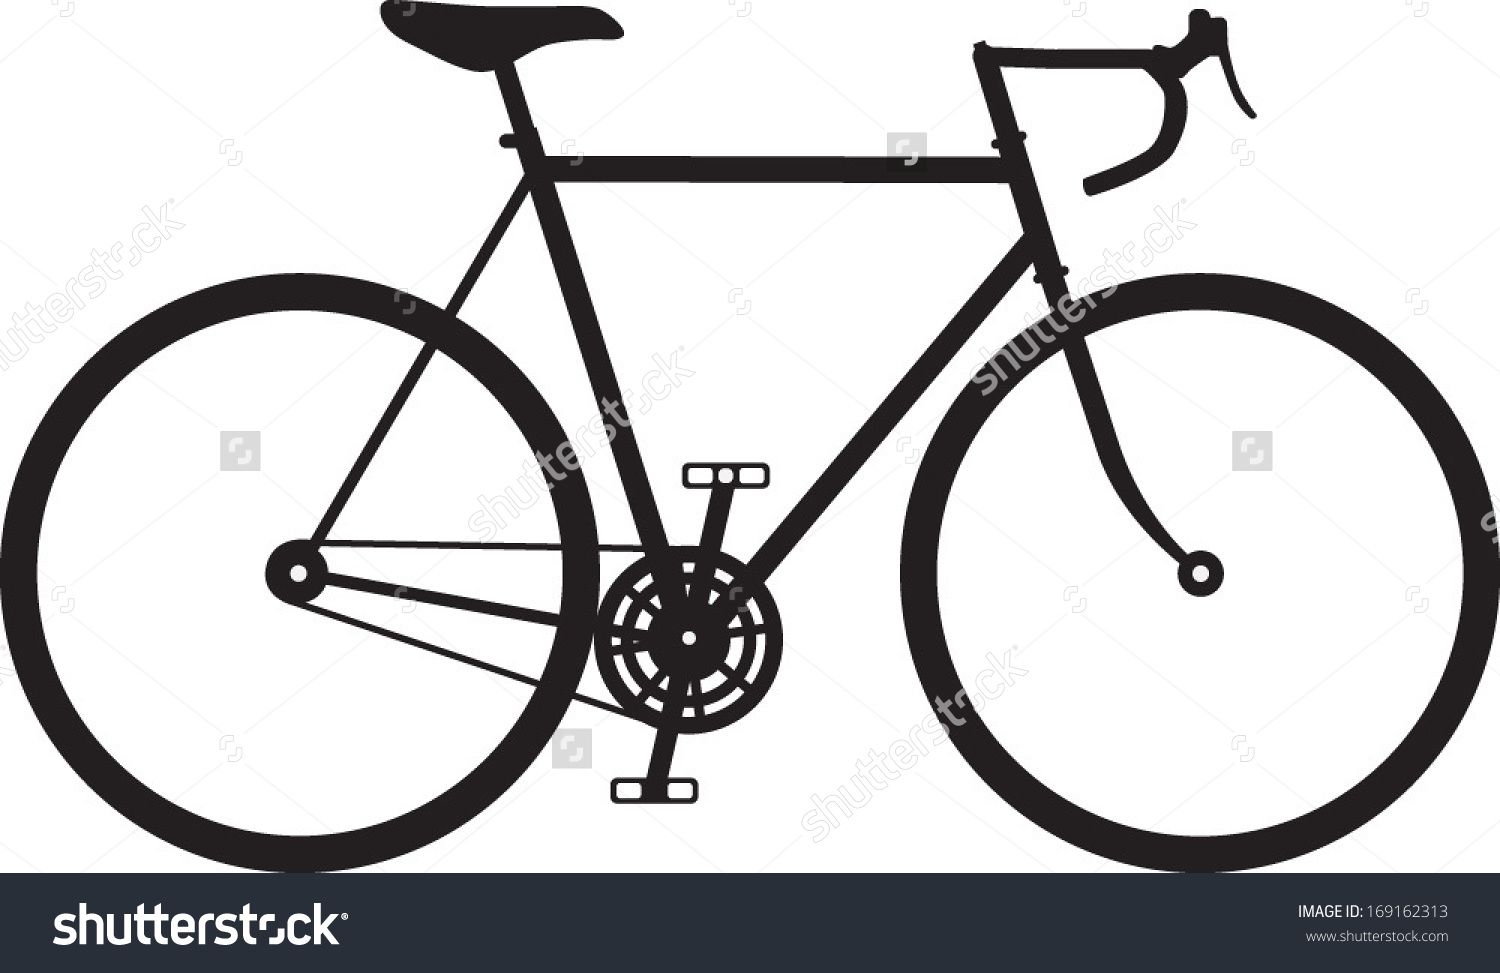 1500x973 Gents Cycles Clipart